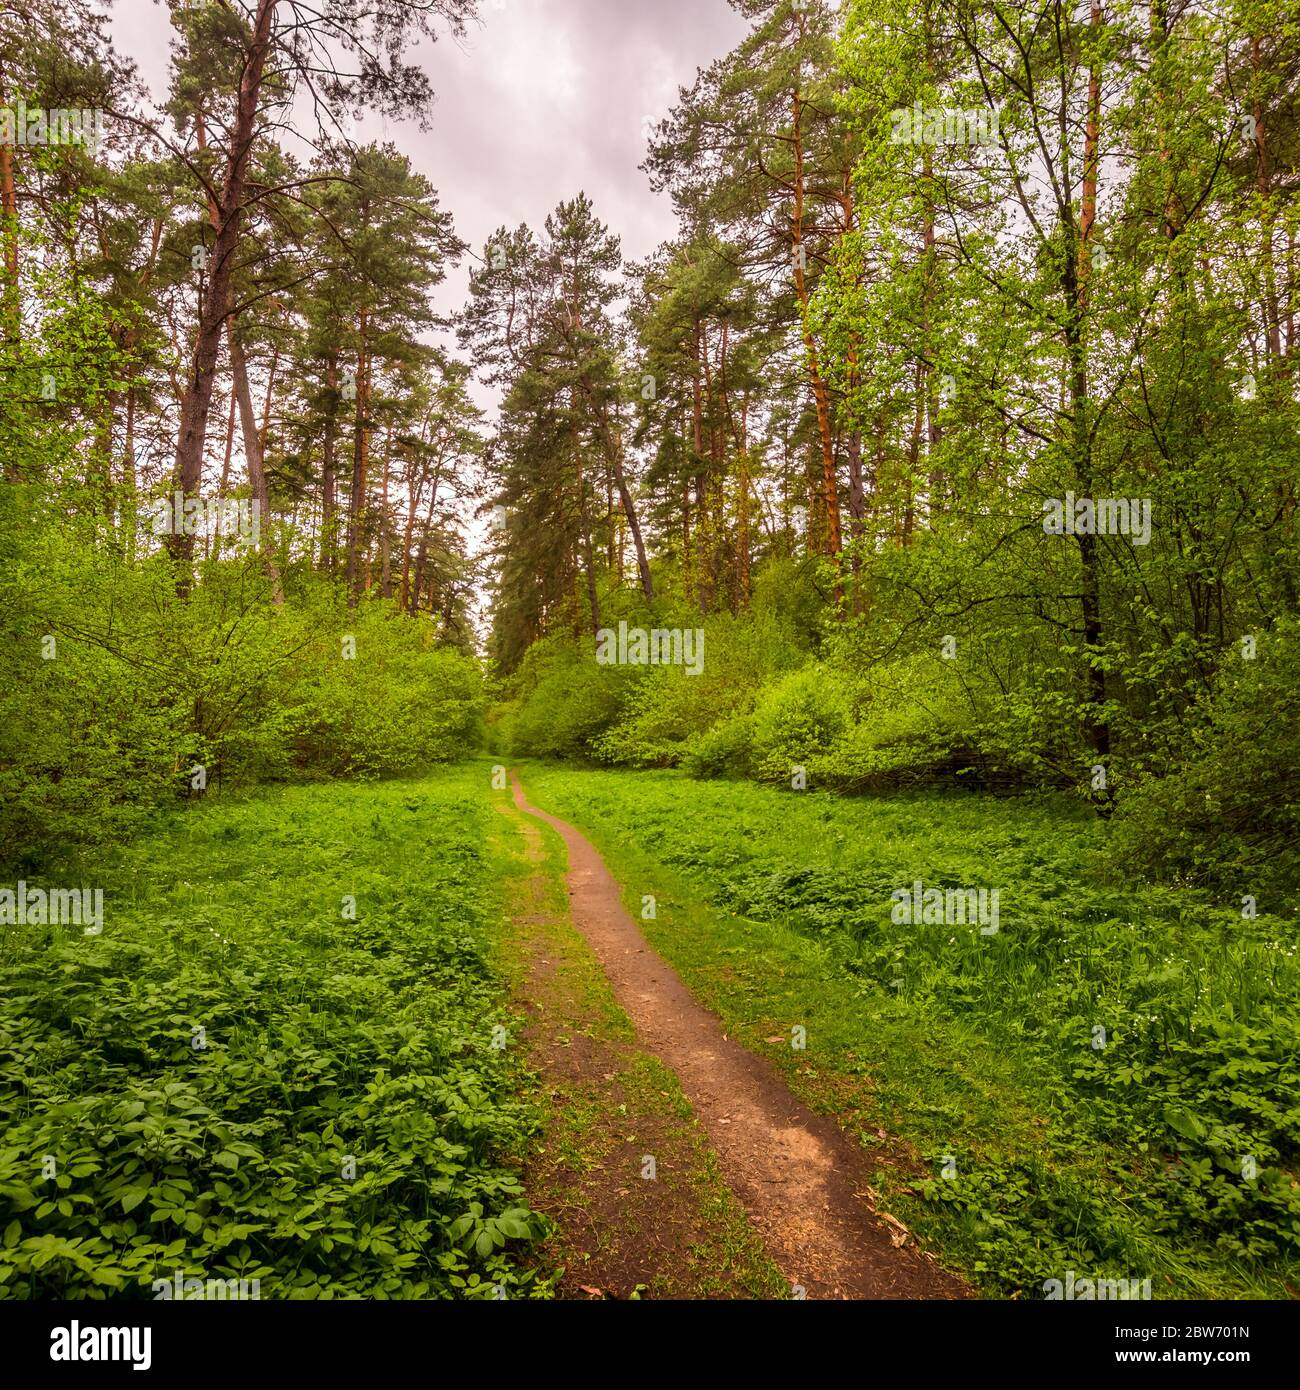 Spring pine forest in cloudy weather with bushes with young green foliage and a path that goes into the distance. Stock Photo